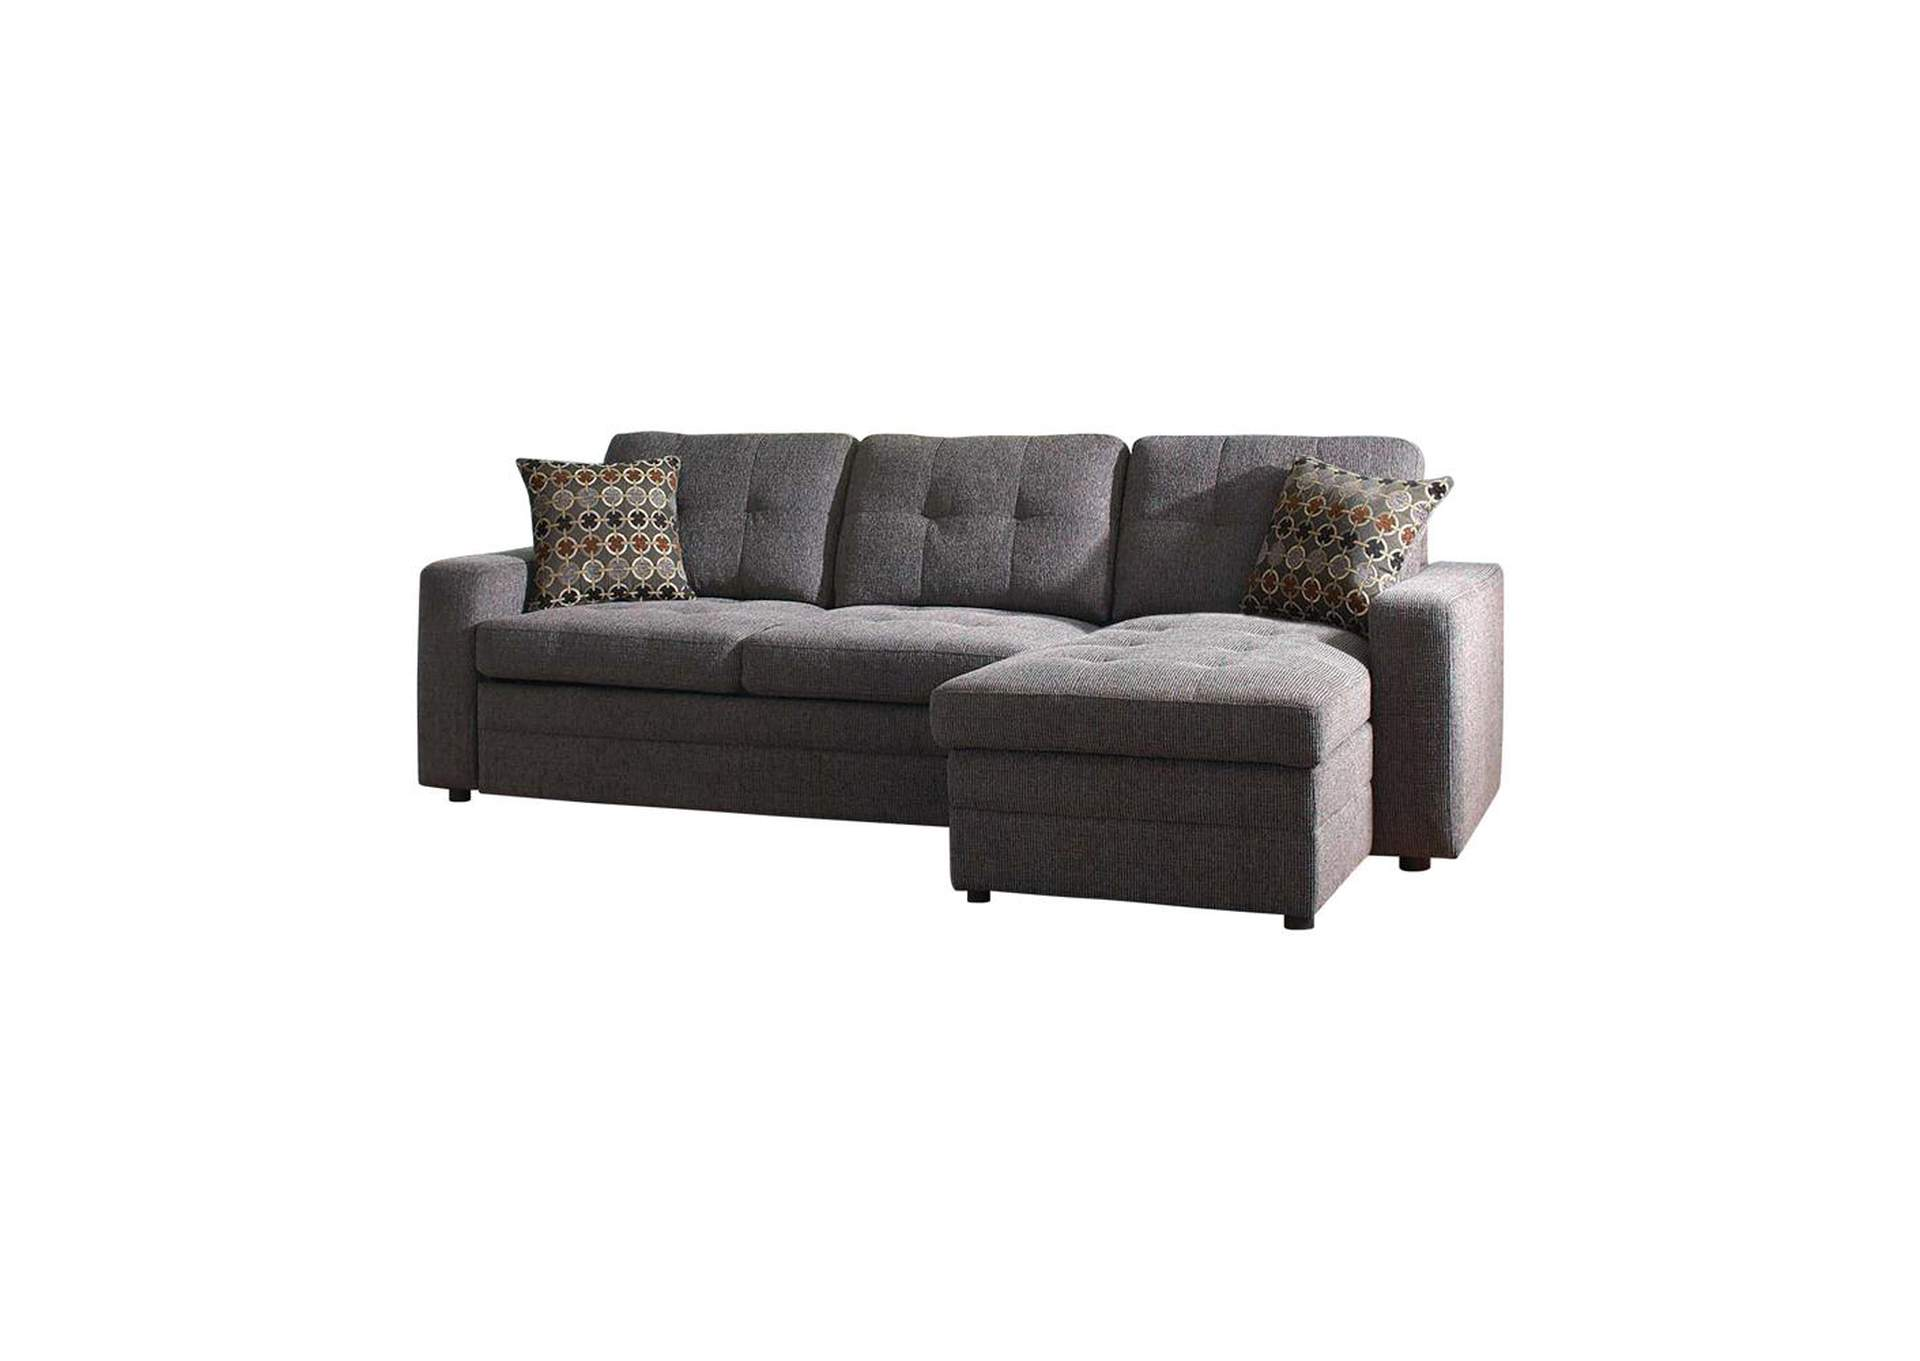 Gus Casual Charcoal Sectional,Coaster Furniture